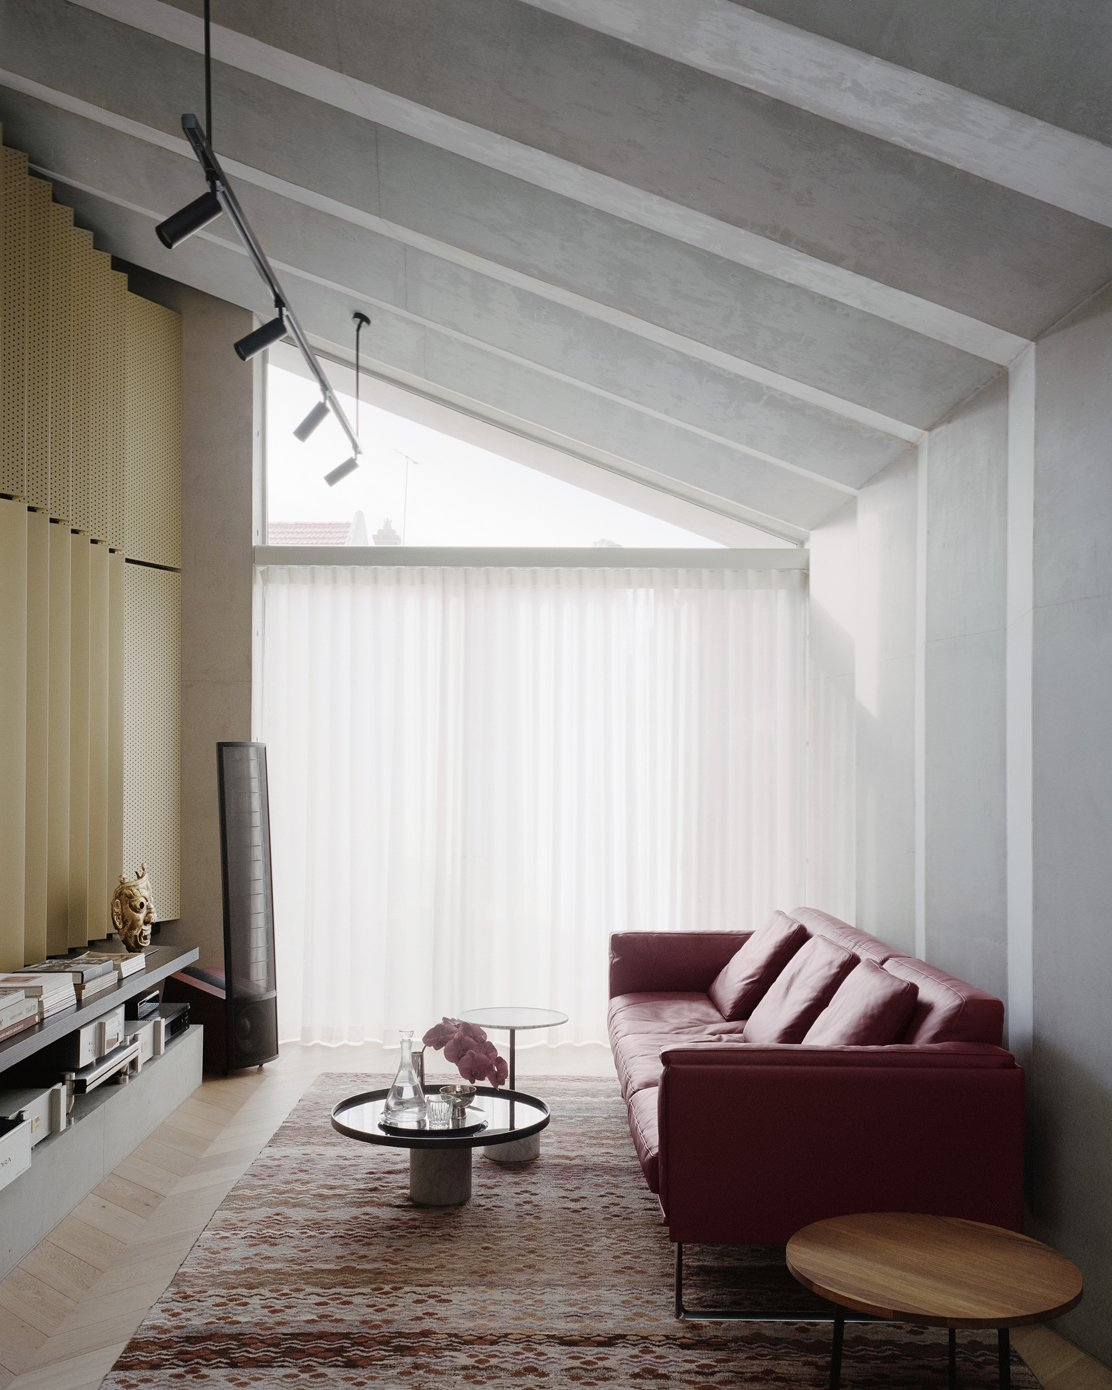 Living, Sofa, Medium Hardwood, End Tables, Rug, Track, Coffee Tables, and Shelves  Living Medium Hardwood Rug Track Photos from A Revamped Terrace House in Sydney Is an Audiophile's Dream